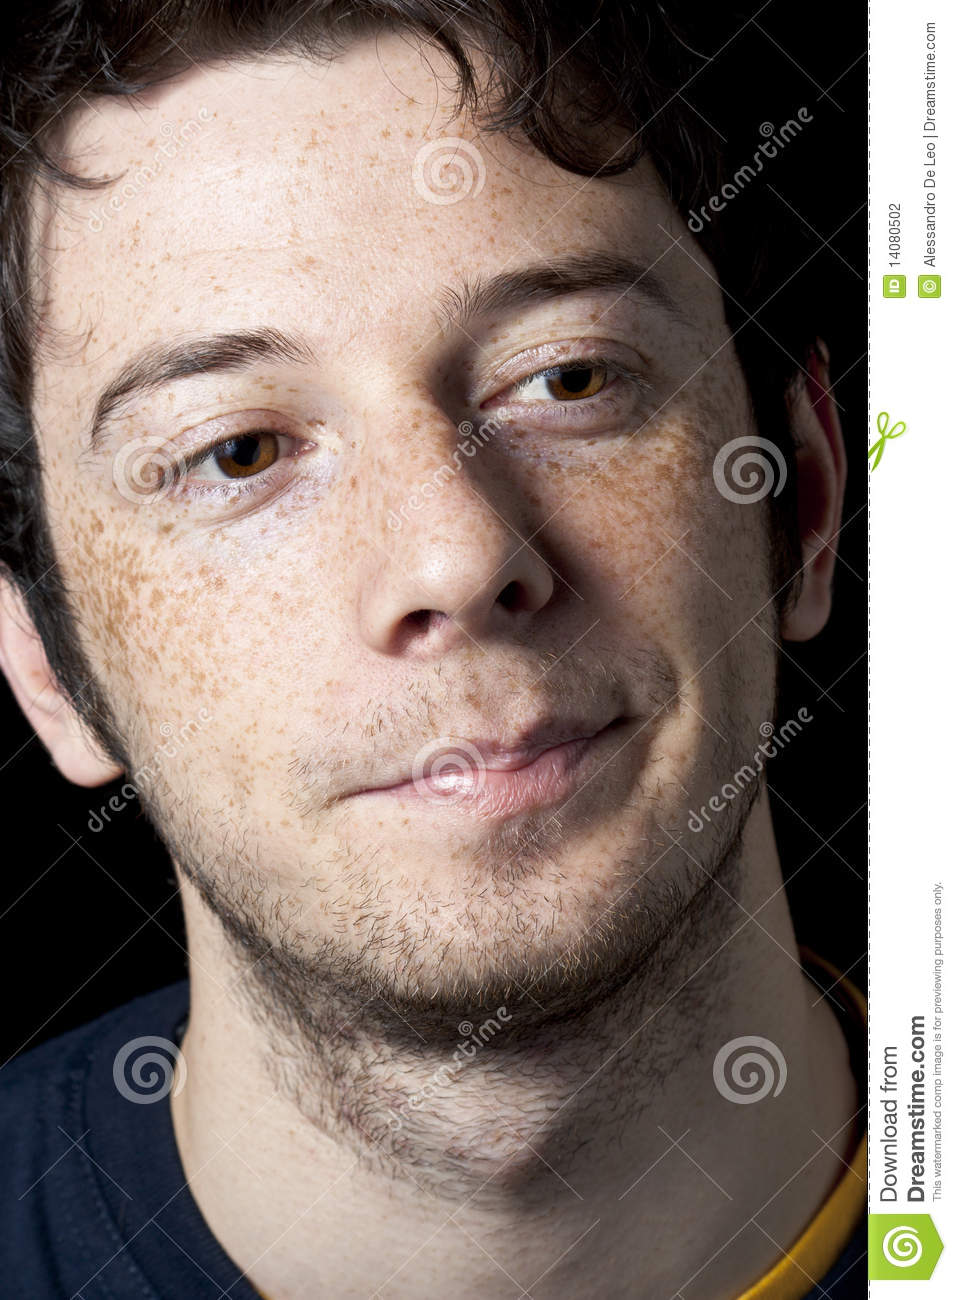 Satisfied Boy With Freckles Stock Photography Image